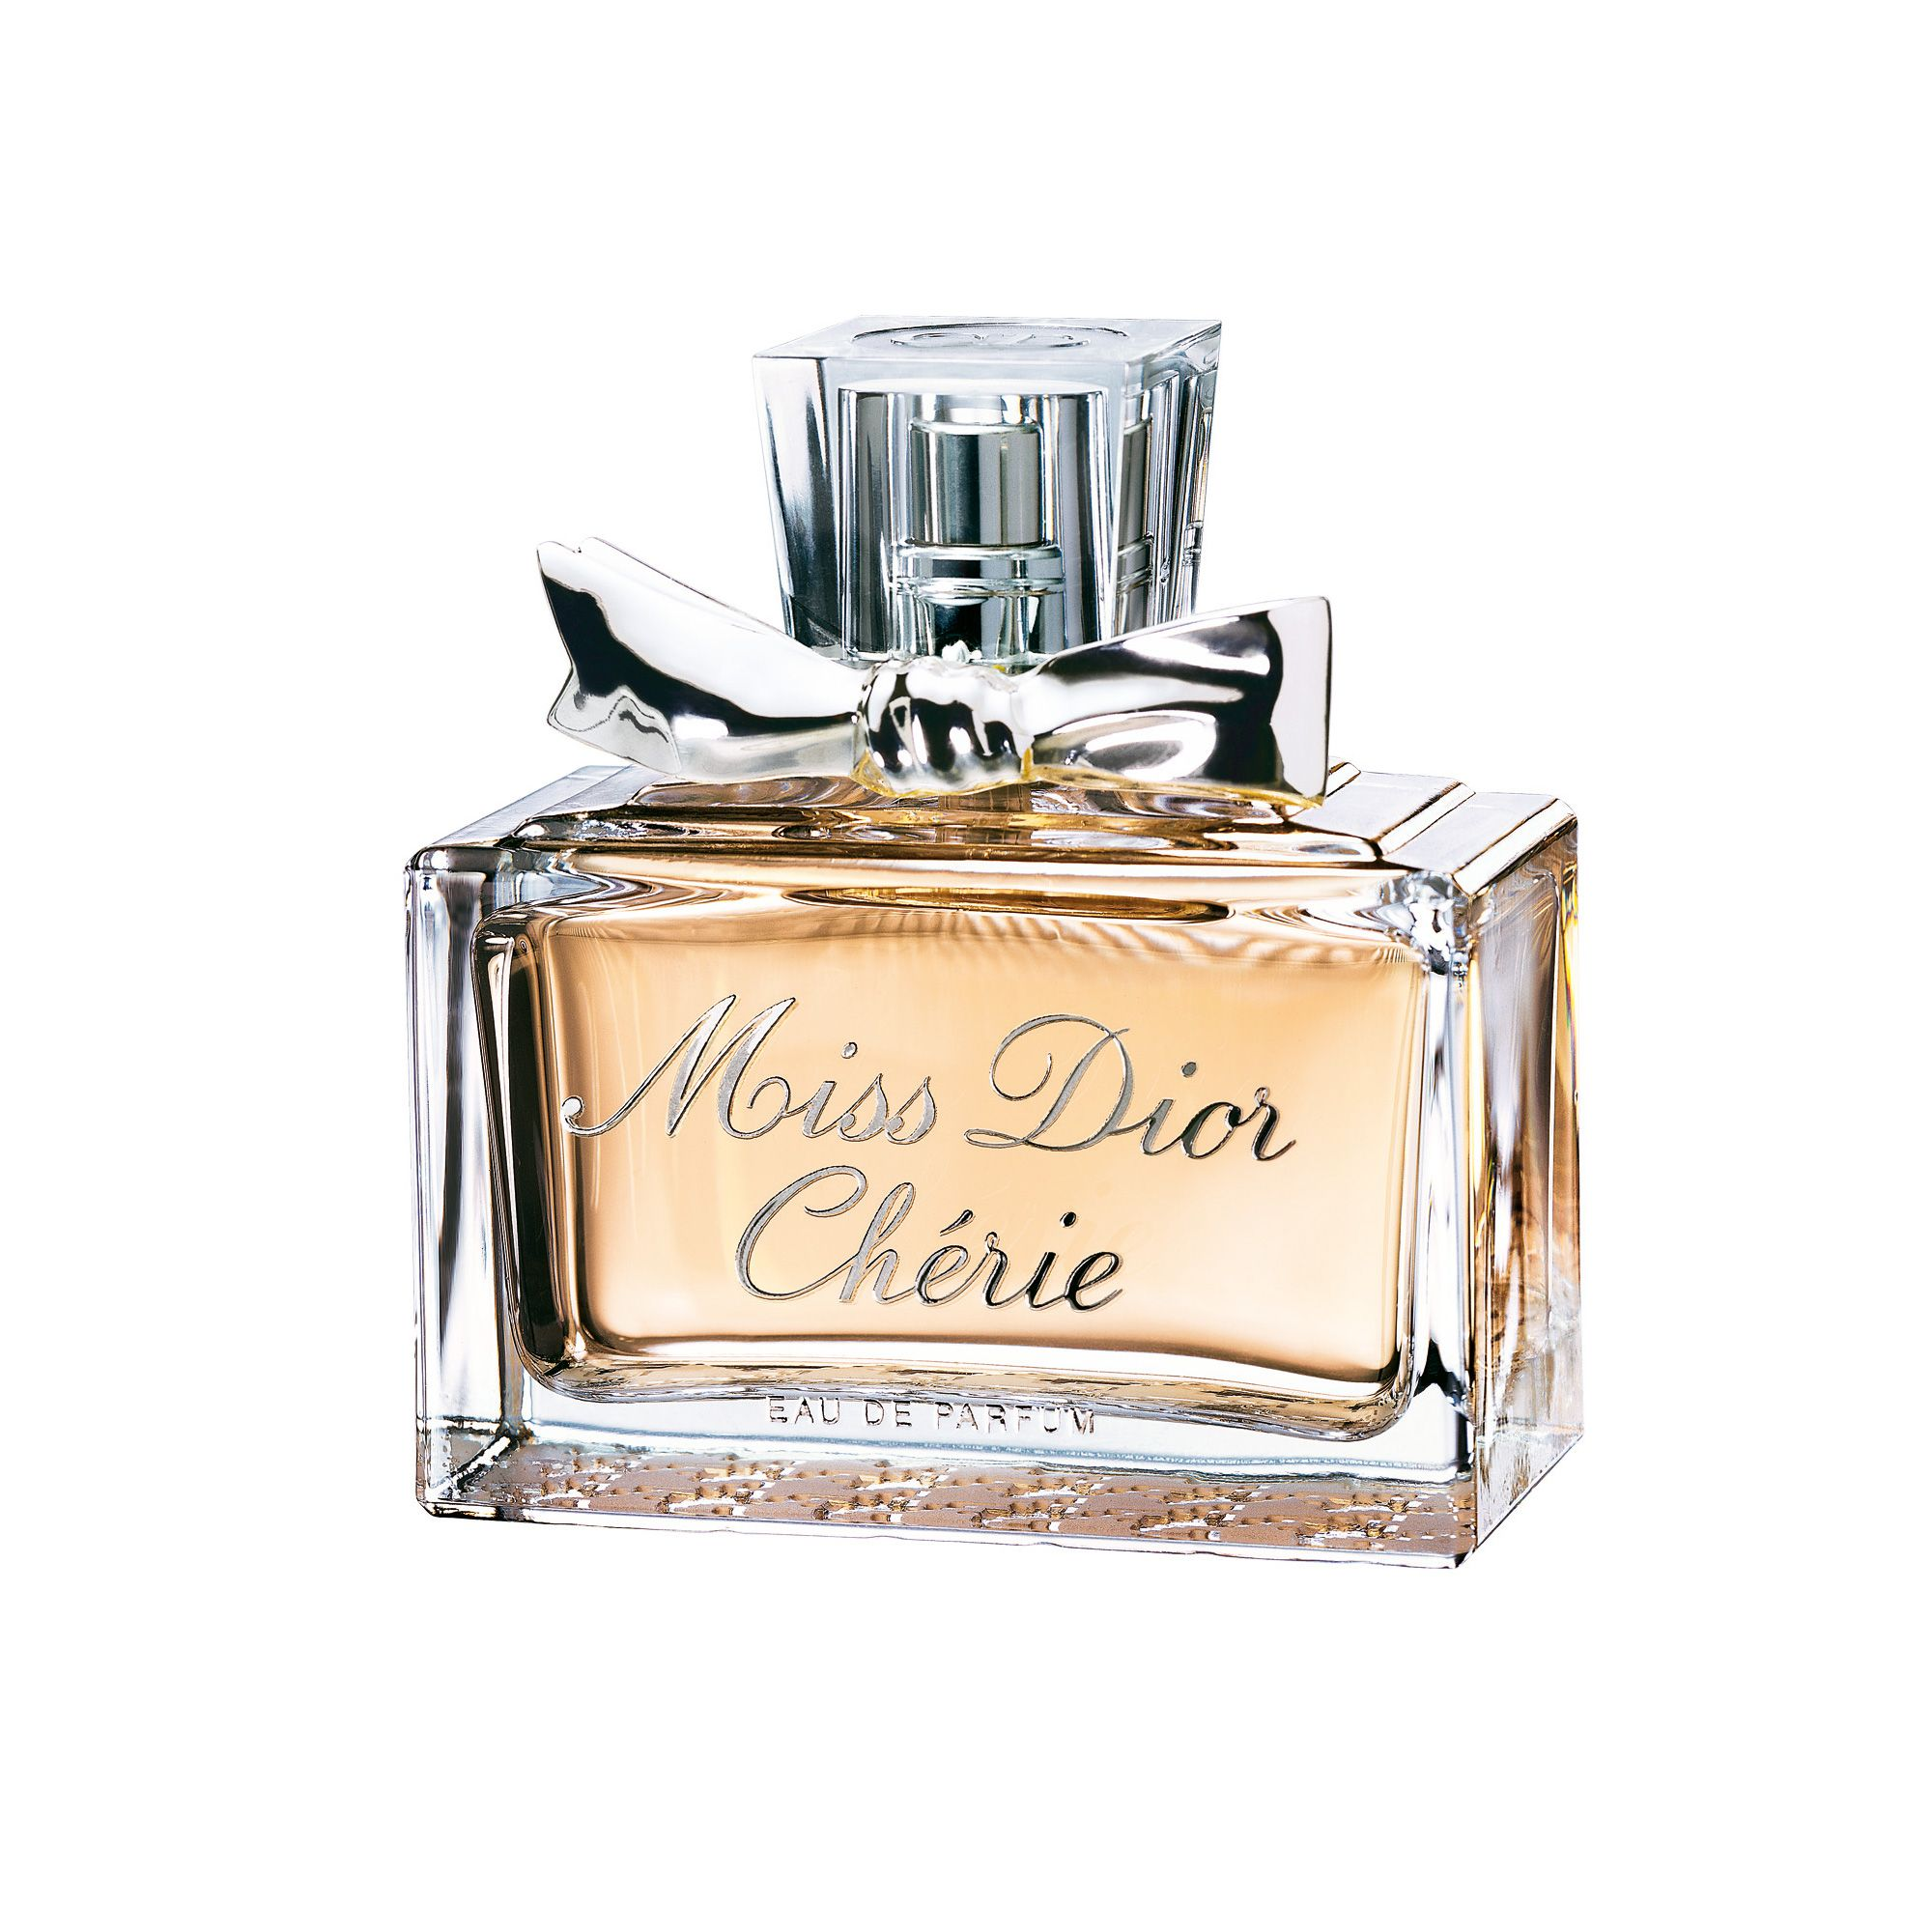 Sofia Coppola also Miss Dior New 17796 furthermore Mannequin Charlize Theron 104 0 N also Dior Miss Dior Cherie Eau De Parfum Spray 100ml in addition Choosing Dior Perfume For Women. on christian dior cherie perfume